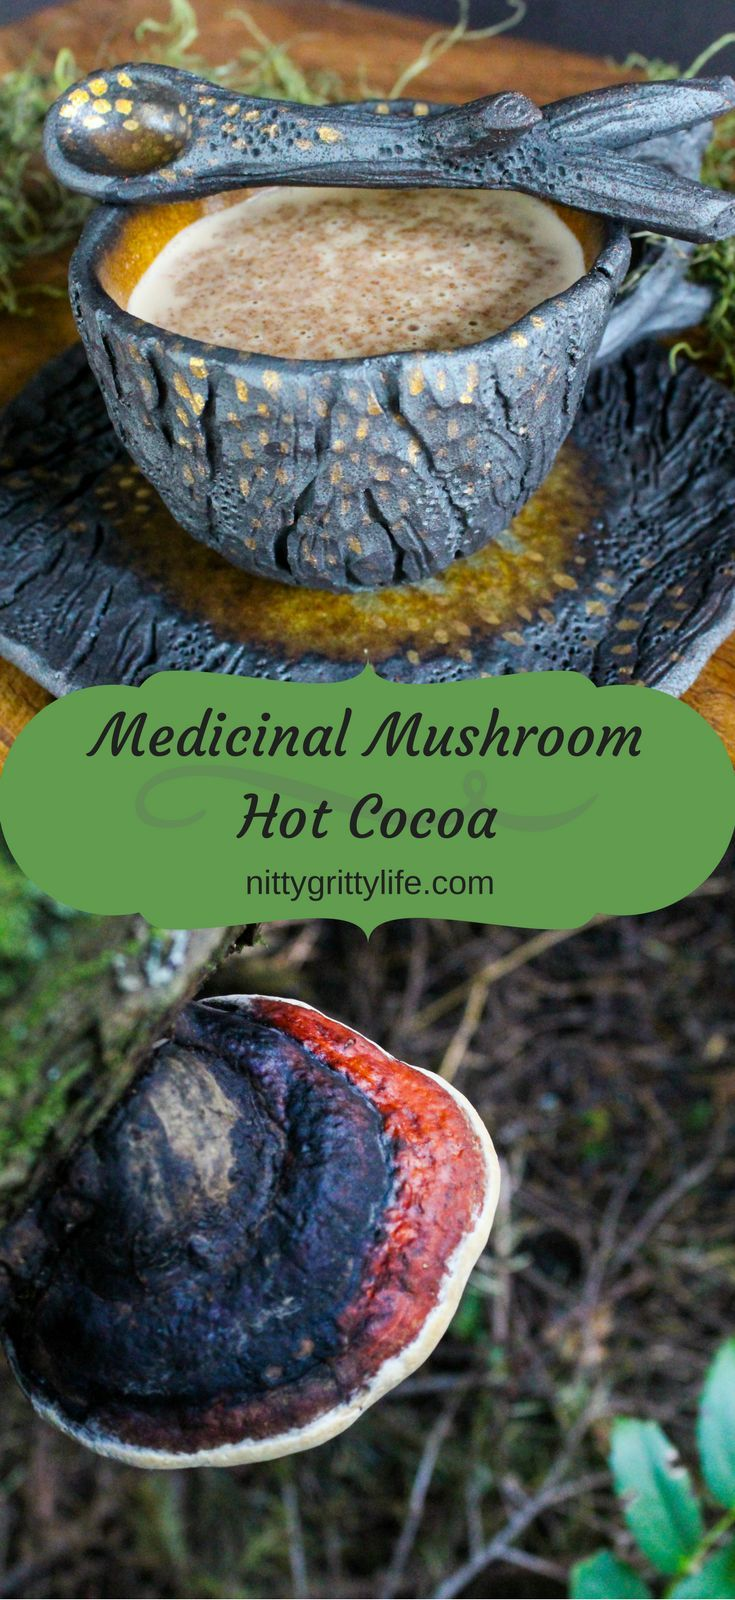 Medicinal Mushroom Hot Cocoa with Red Belted Polypore | Recipe